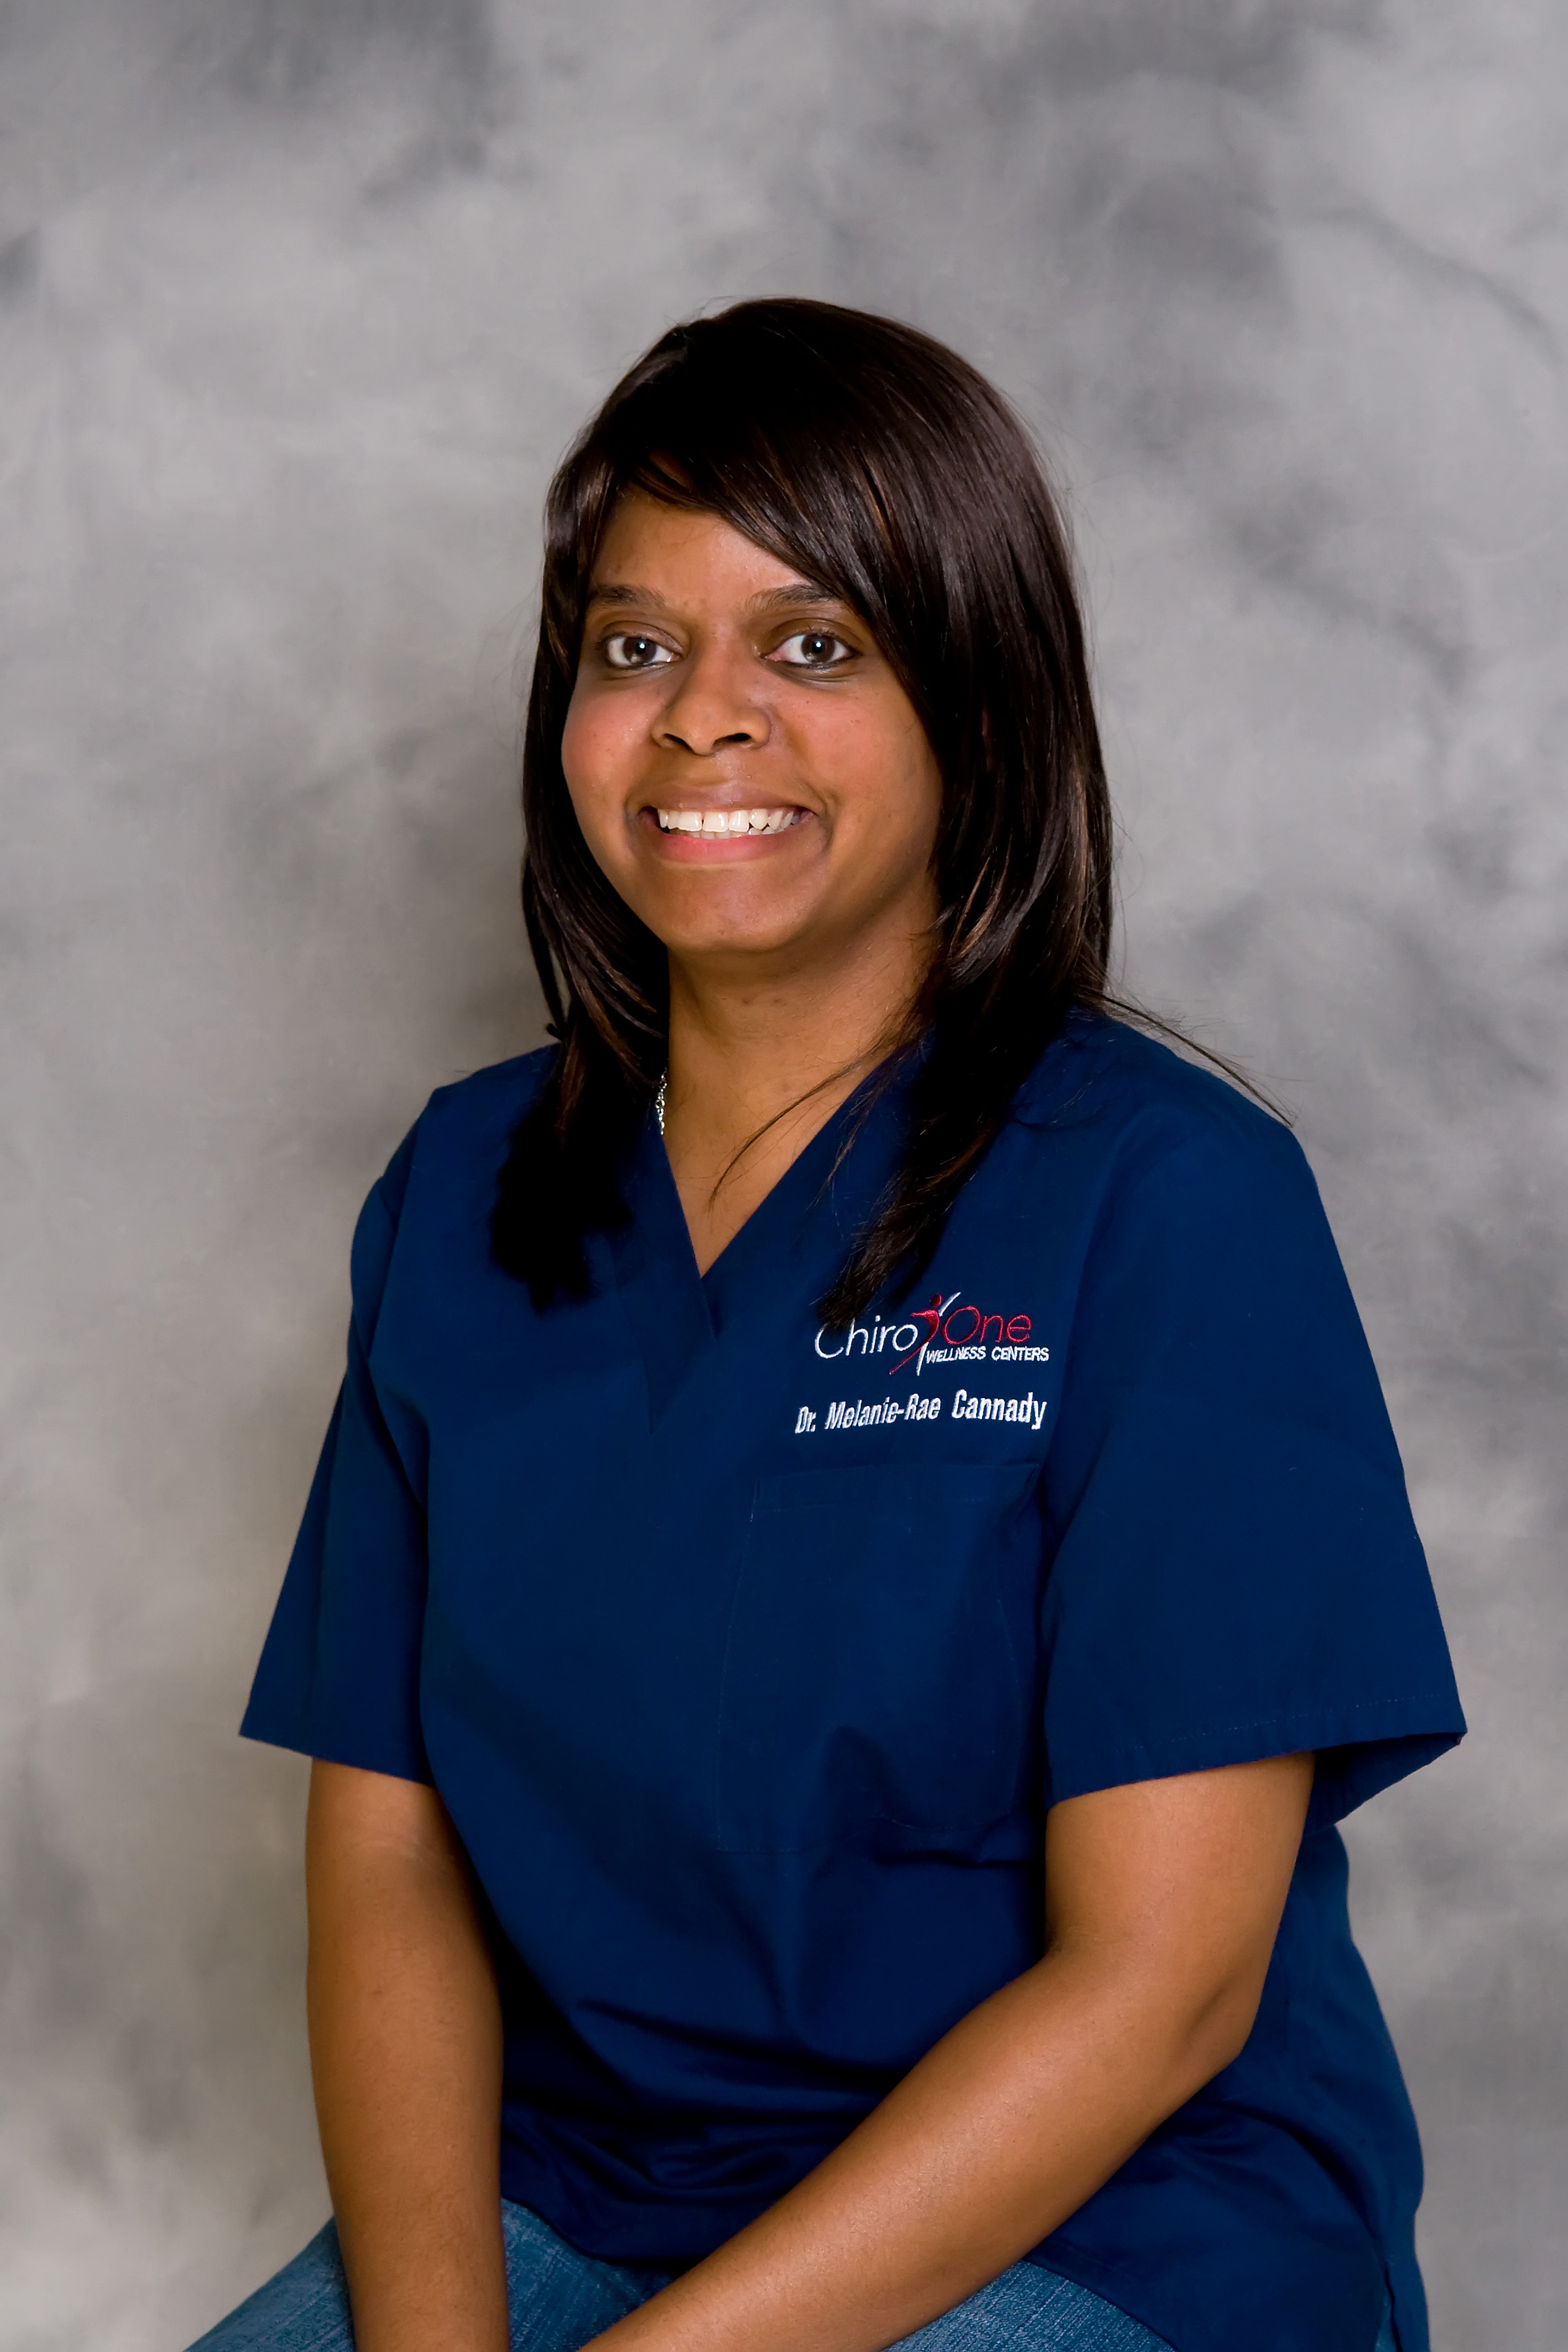 Dr. Melanie Cannady, D.C., Chiropractic Director of Chiro One Wellness Center of Wheaton, IL.